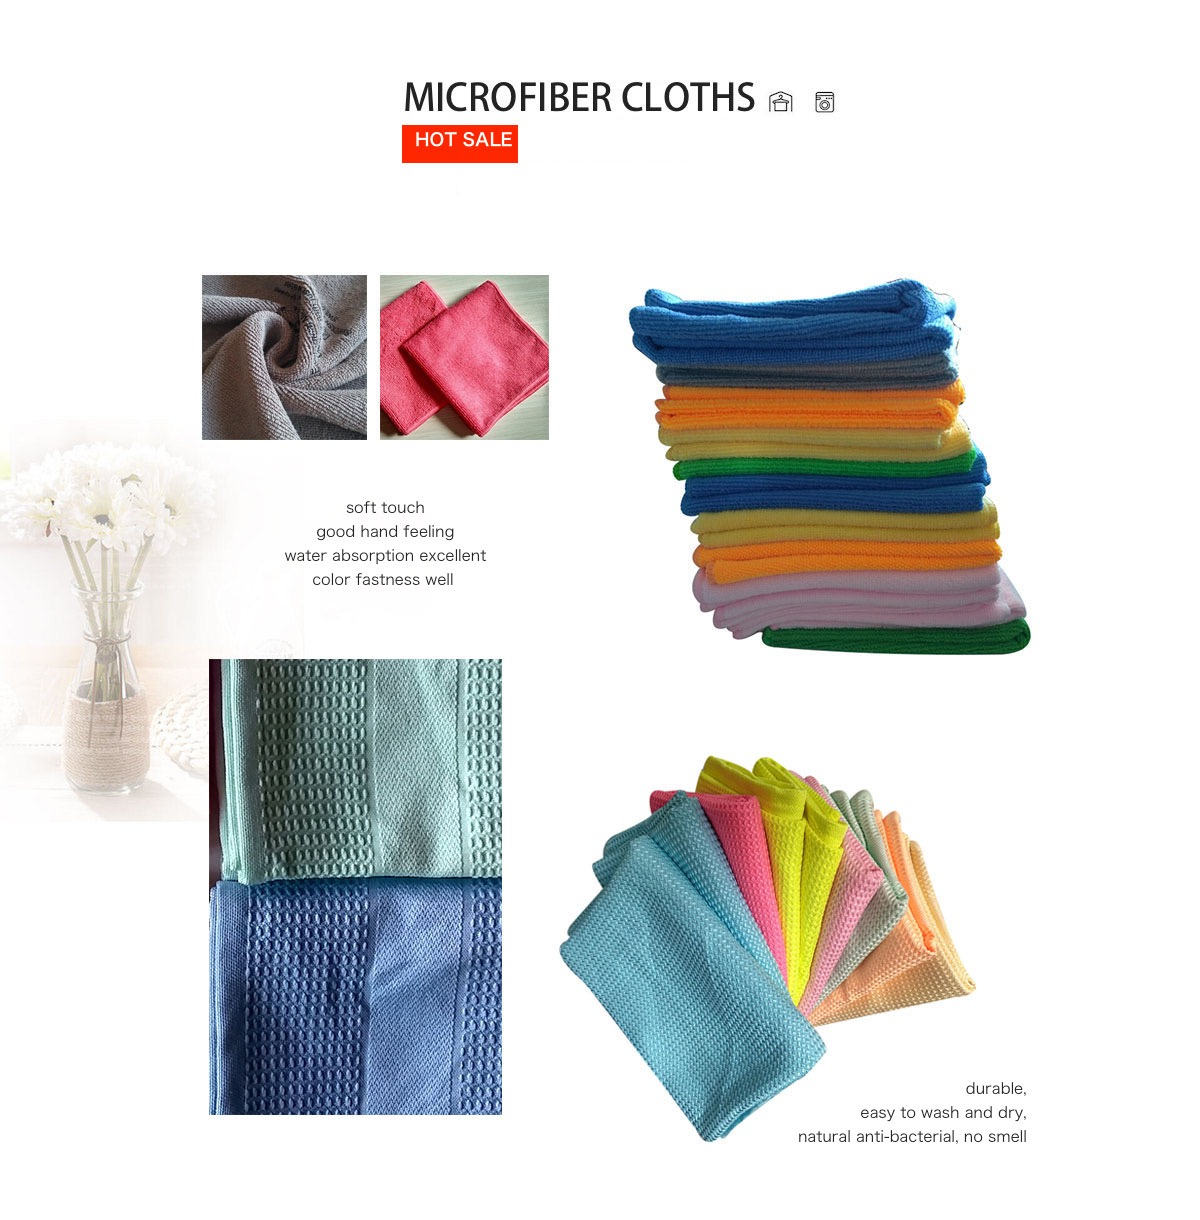 18 new green microfiber towels new cleaning cloths bulk 12x12 manufacturers sale